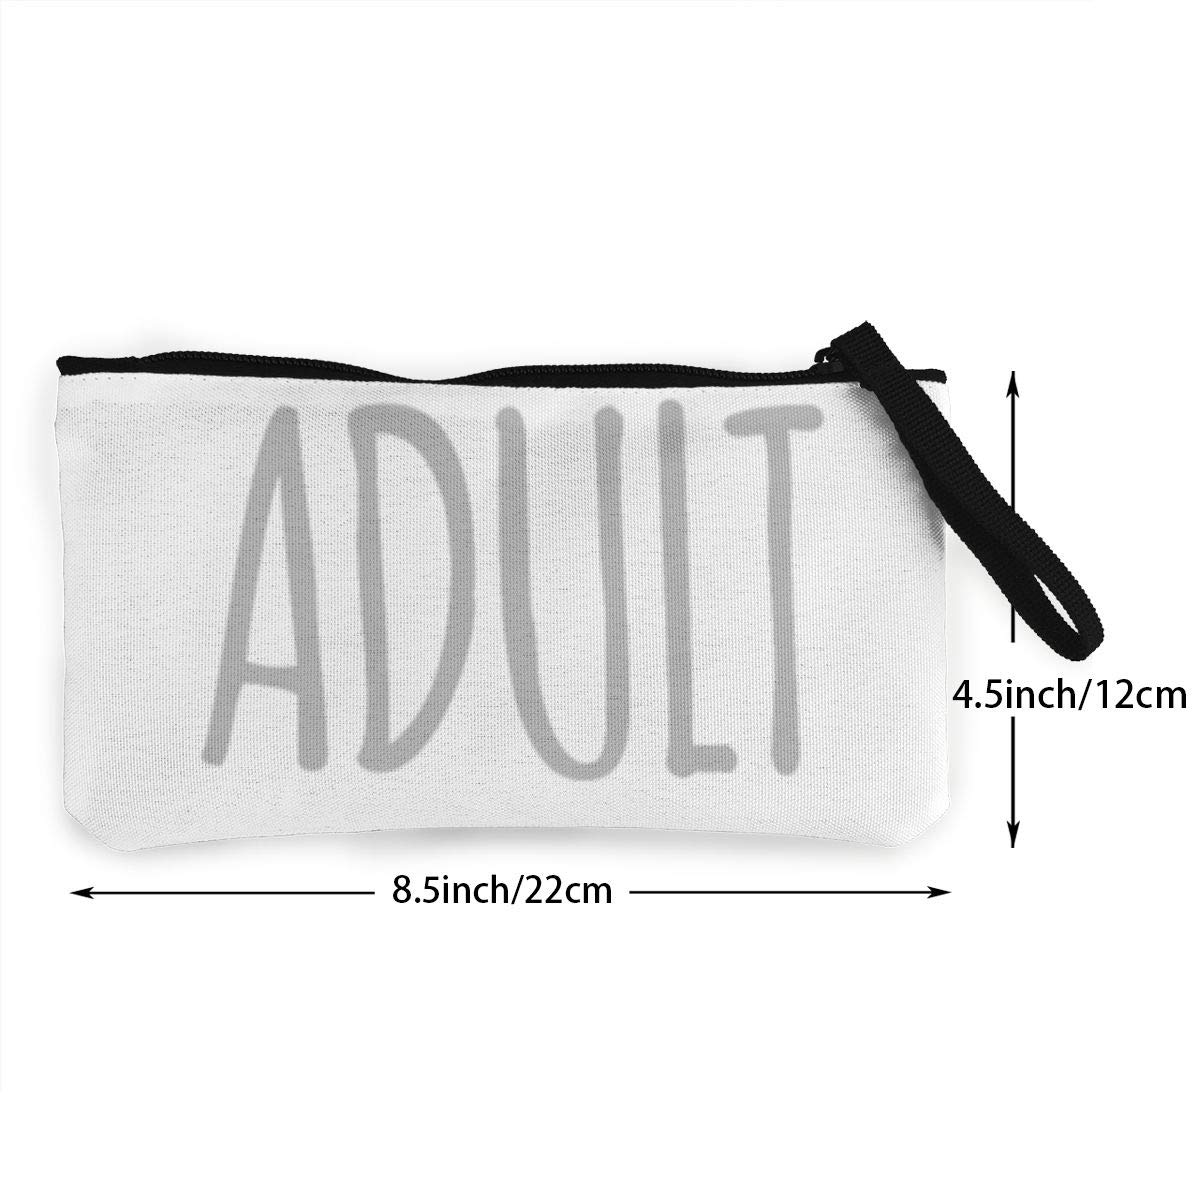 Make Up Bag DH14hjsdDEE I Cant Adult Today Zipper Canvas Coin Purse Wallet Cellphone Bag With Handle